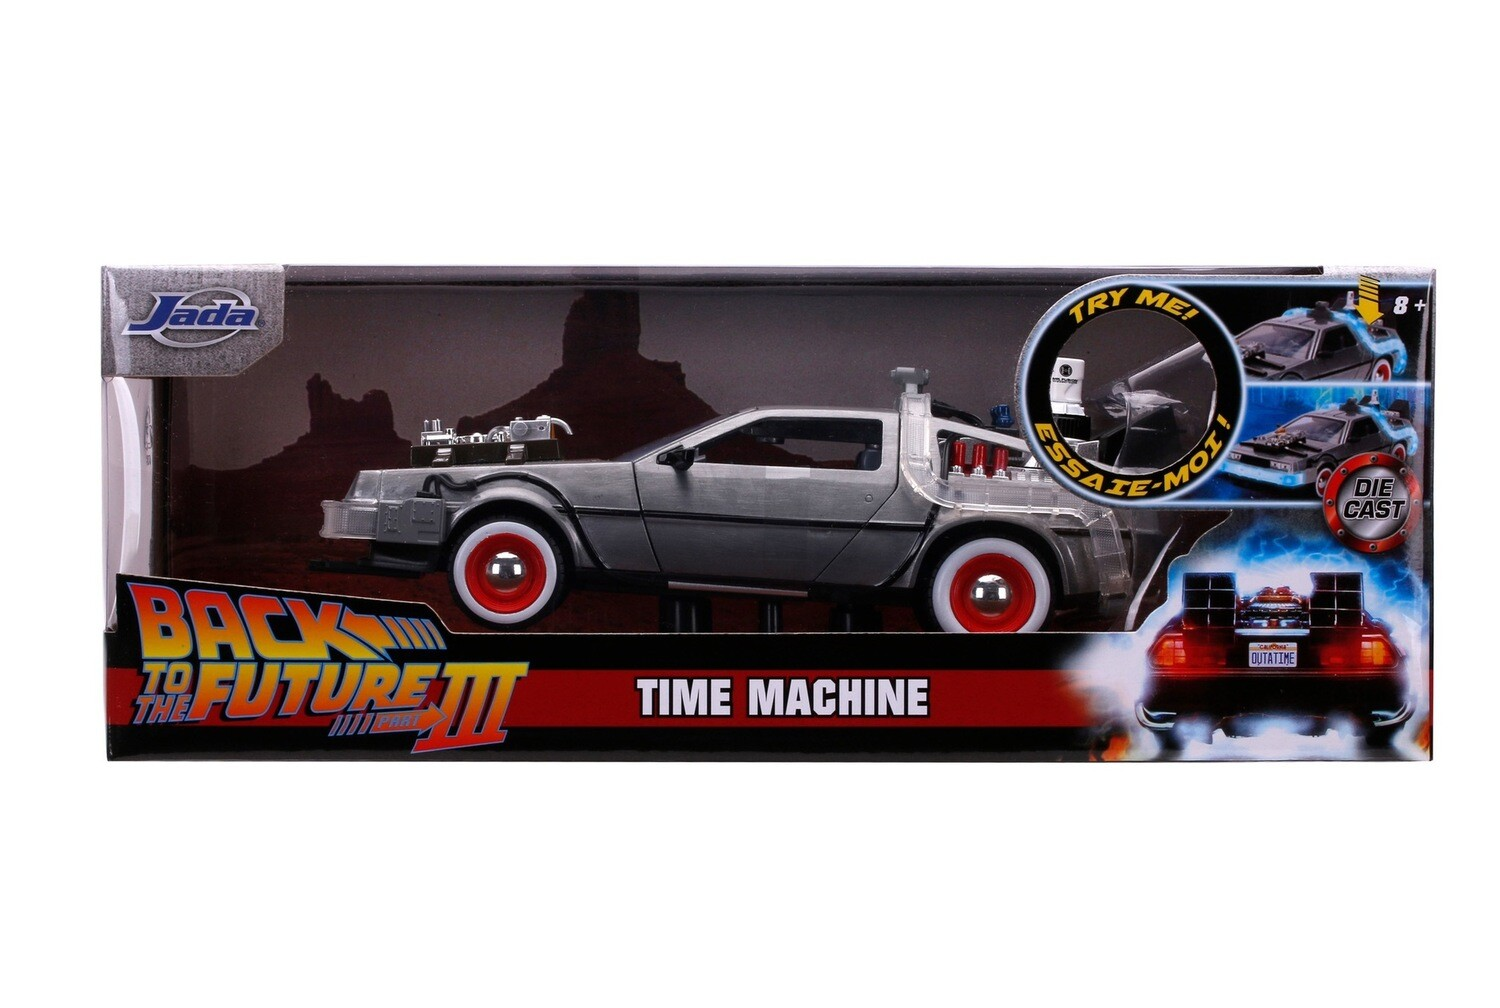 Delorean time machine III